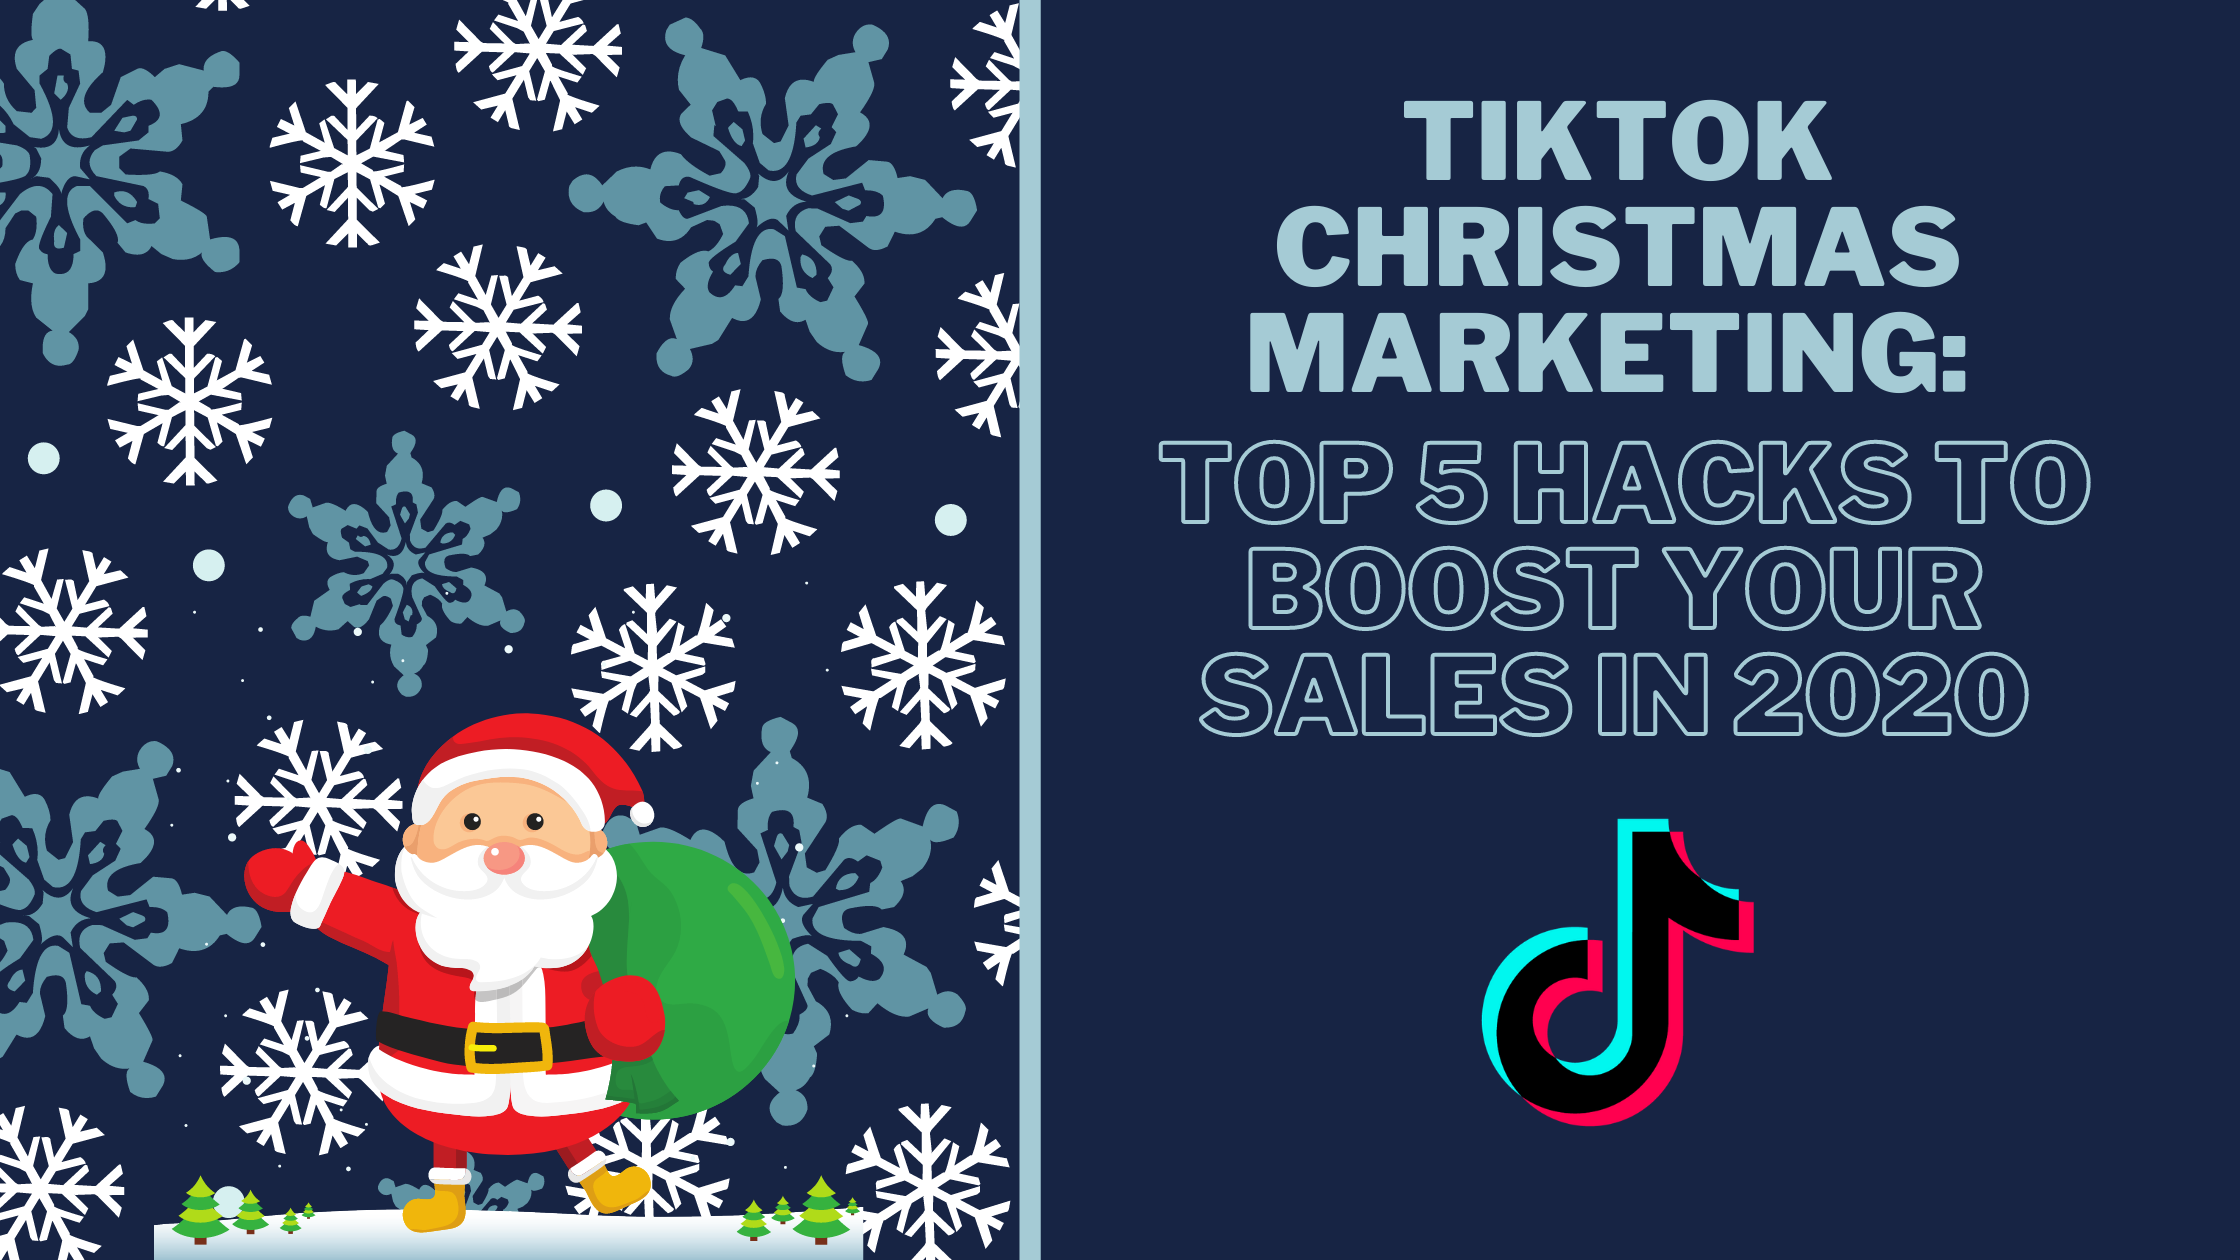 TikTok Christmas Marketing: Top 5 Hacks to Boost Your Sales in 2020